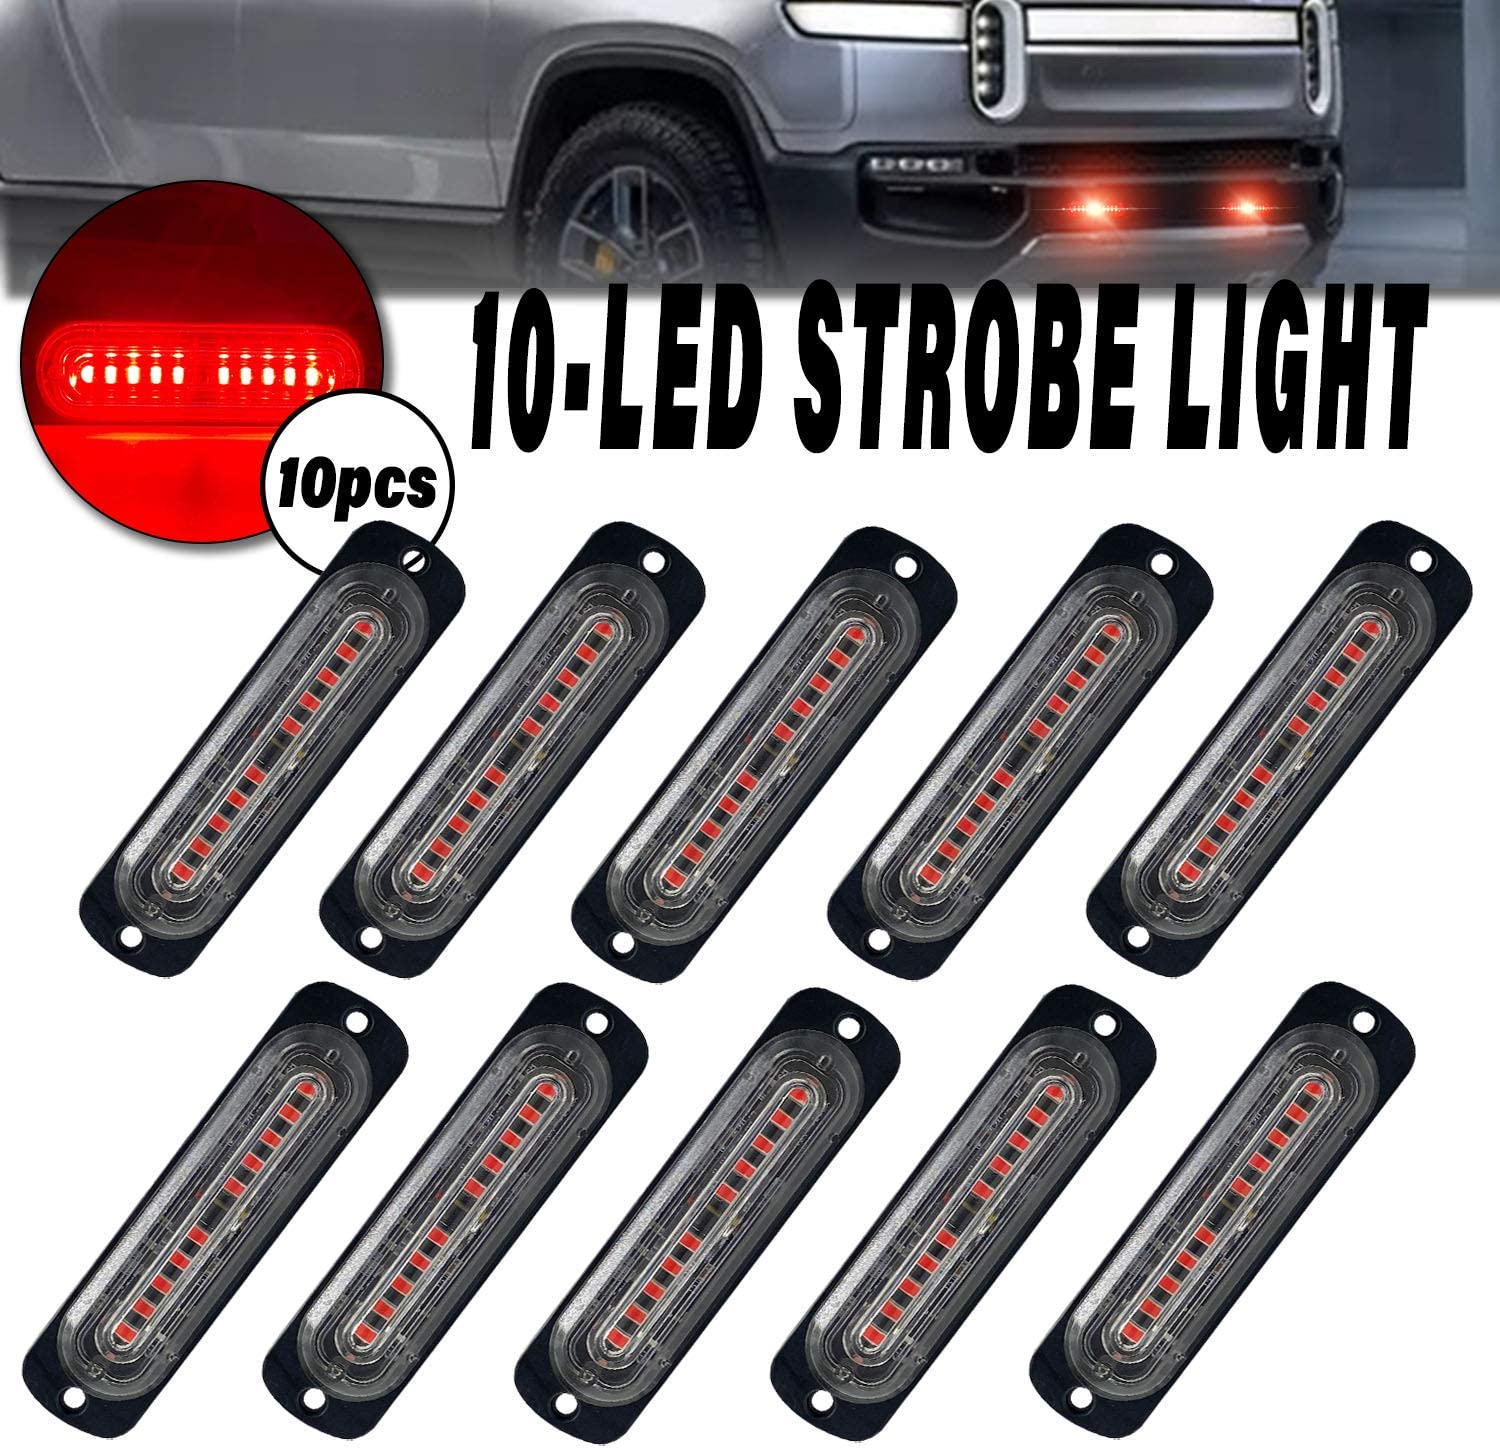 LED Strobe Emergency Lights DIBMS New products Max 83% OFF world's highest quality popular 10x 10 Slim Ultra Red Sur